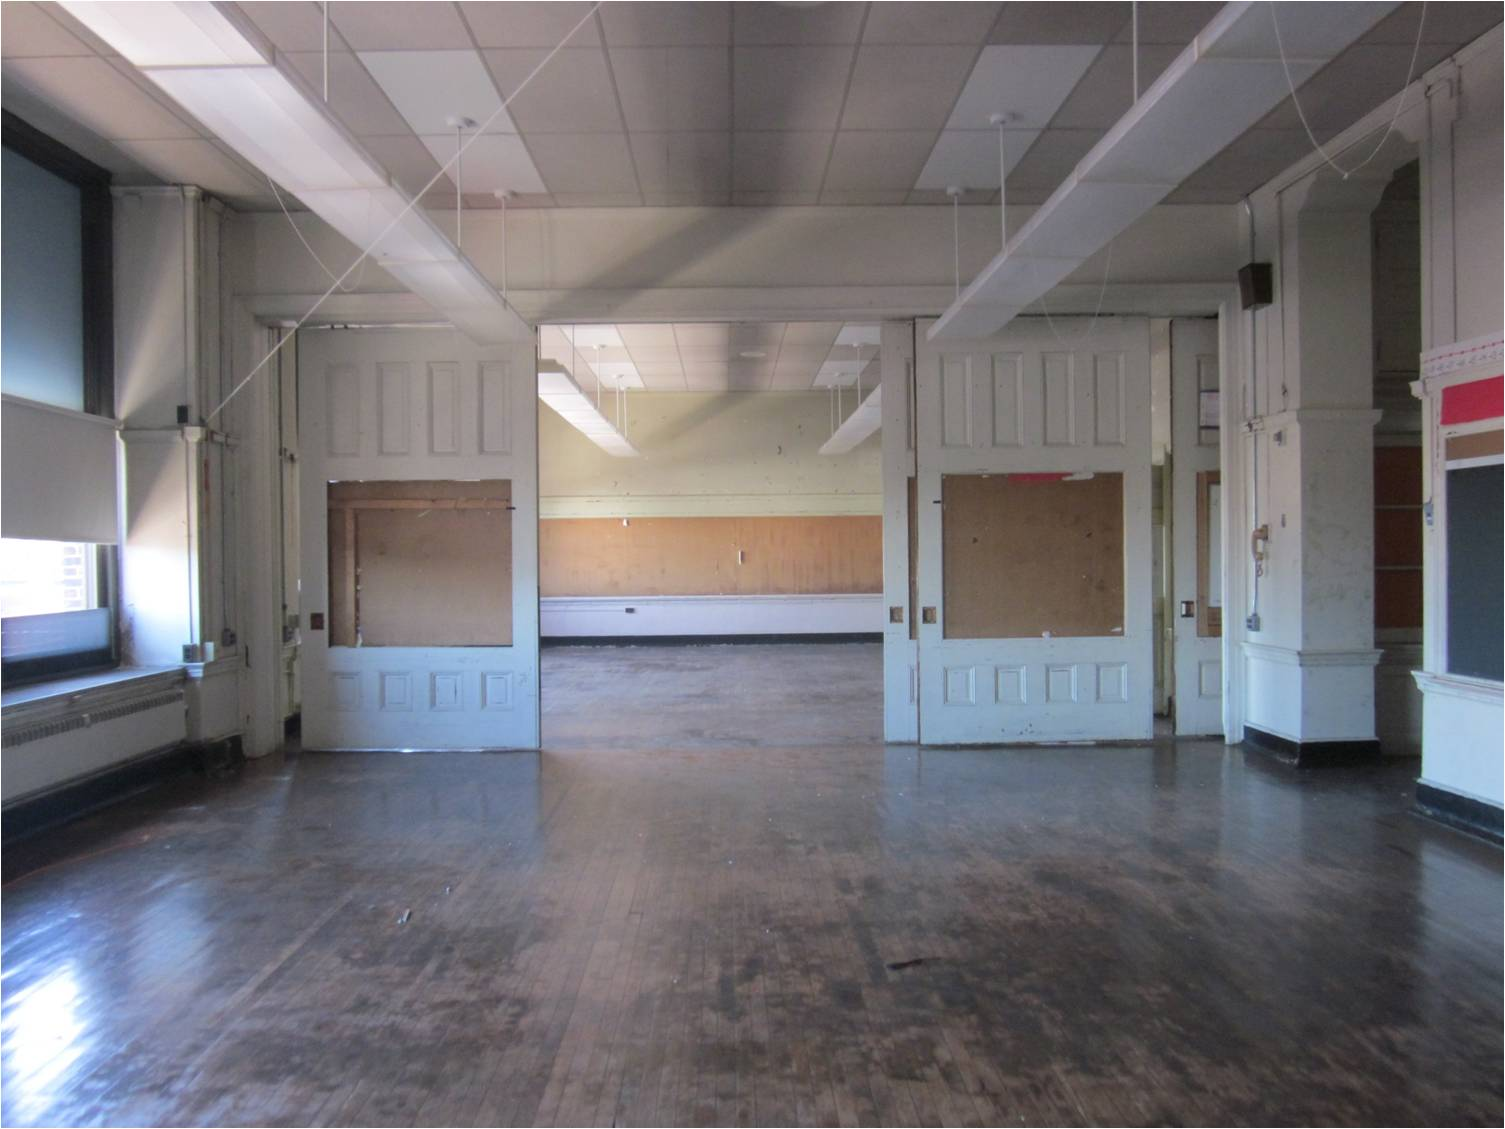 Old Frances Willard School has sliding classroom partitions, offering a flexible layout | courtesy of Community Design Collaborative